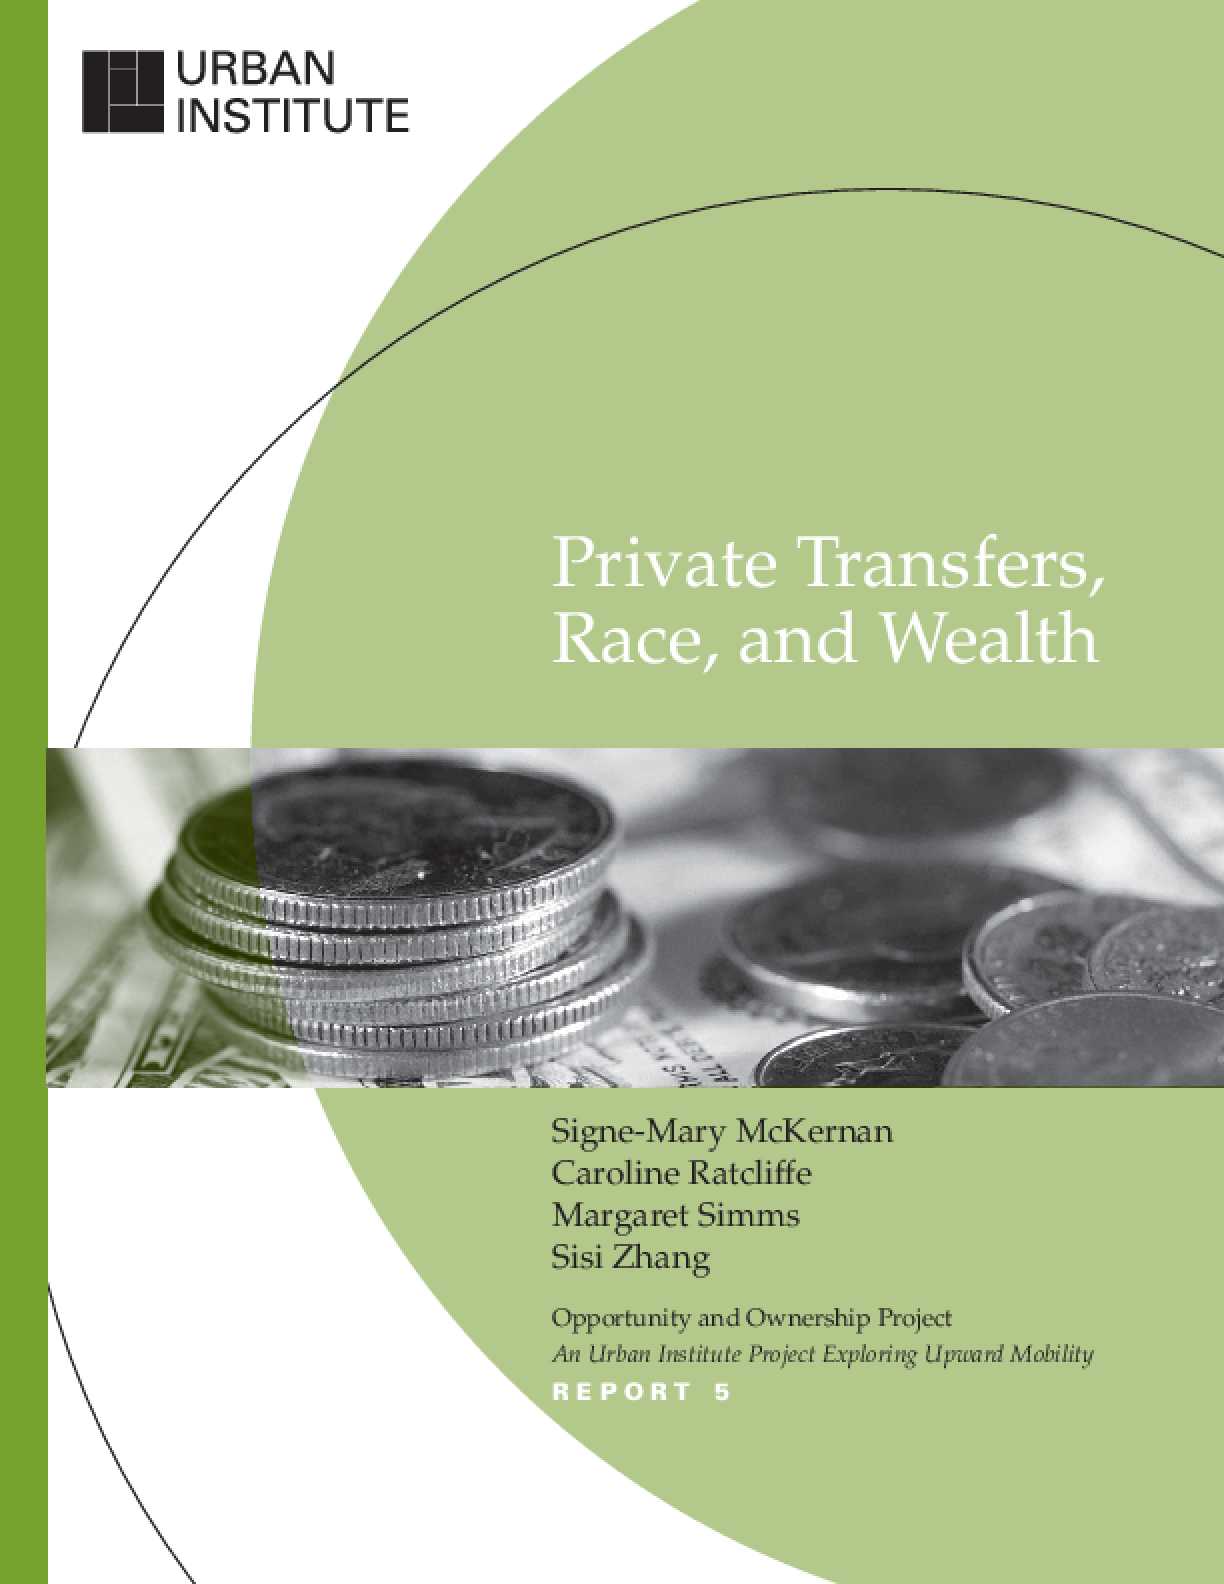 Private Transfers, Race, and Wealth